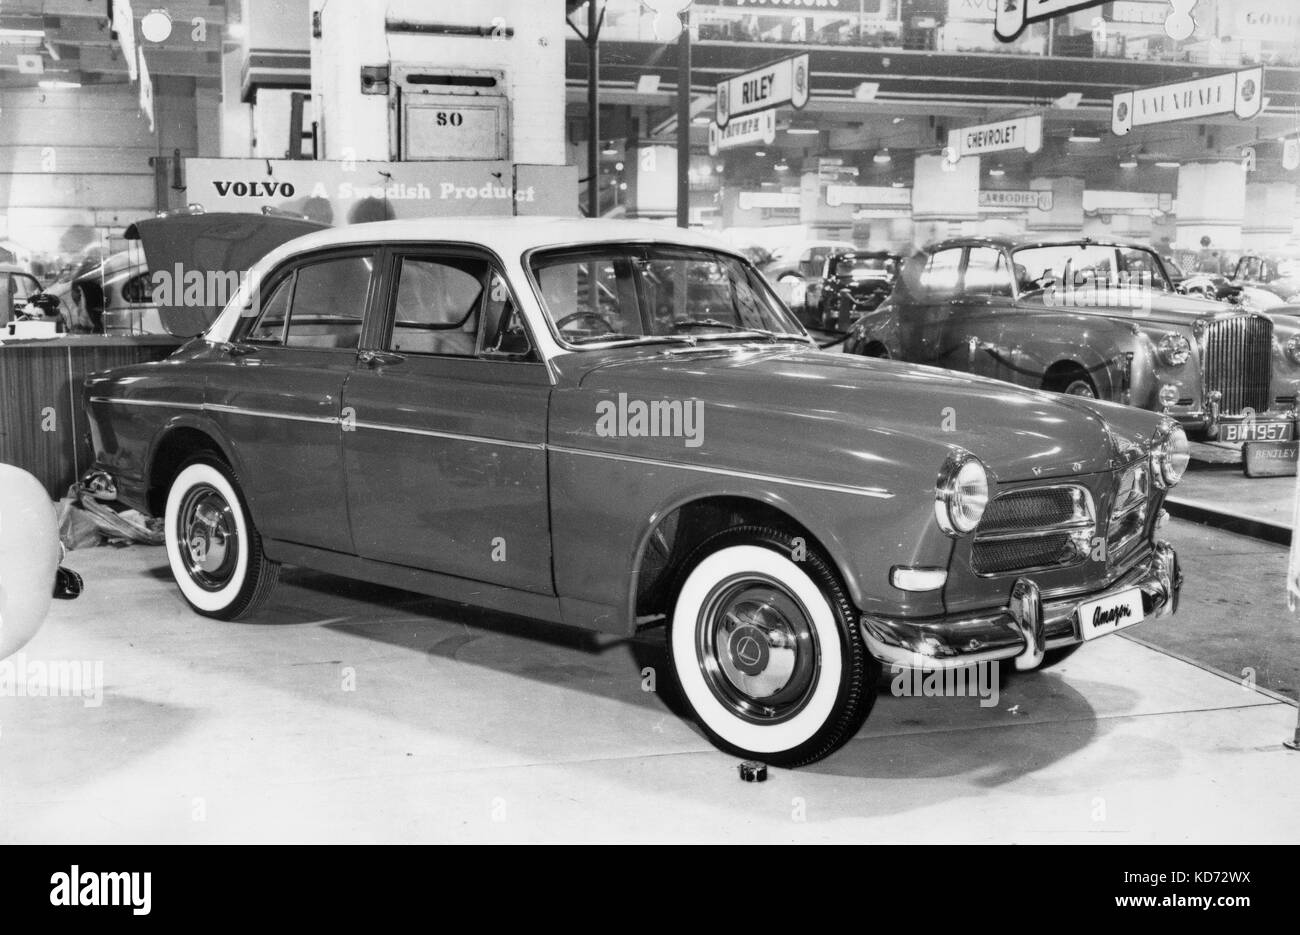 1956 Volvo 120 Amazon at motorshow - Stock Image